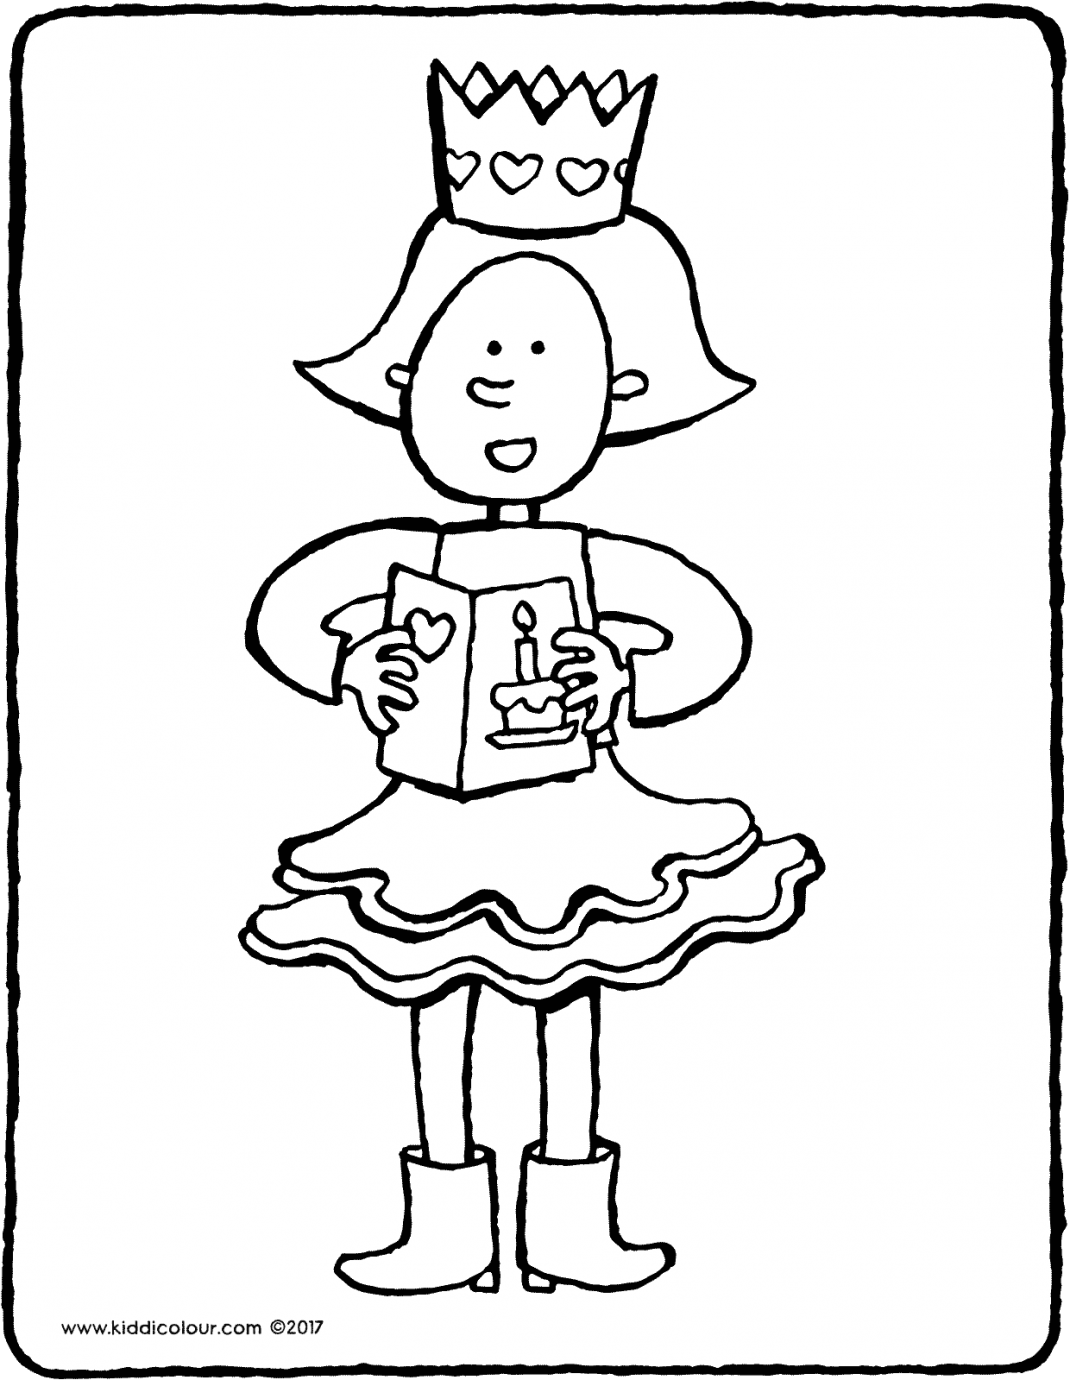 Emma's birthday colouring page drawing picture 01V